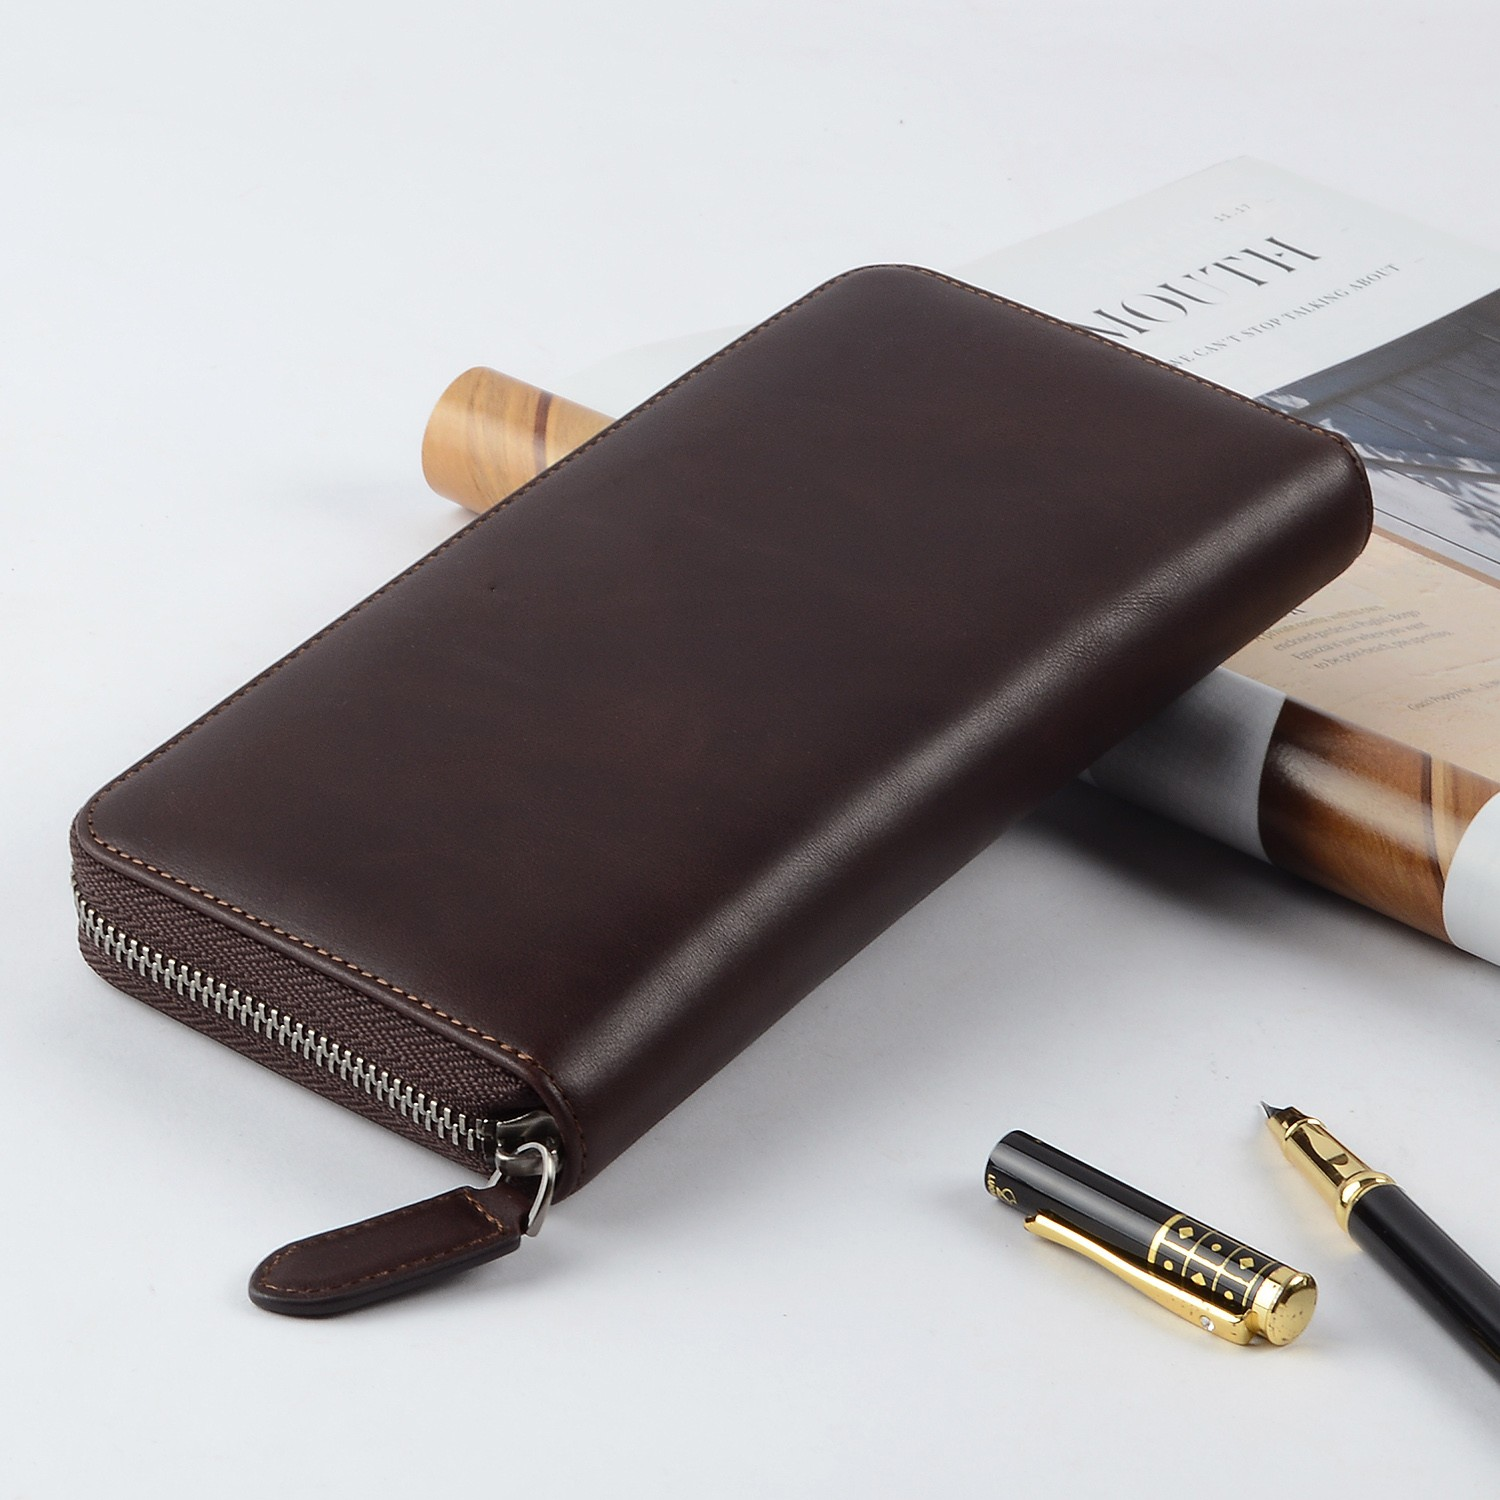 AIVI leather card holder wallet supply for iphone 8 / 8plus-6